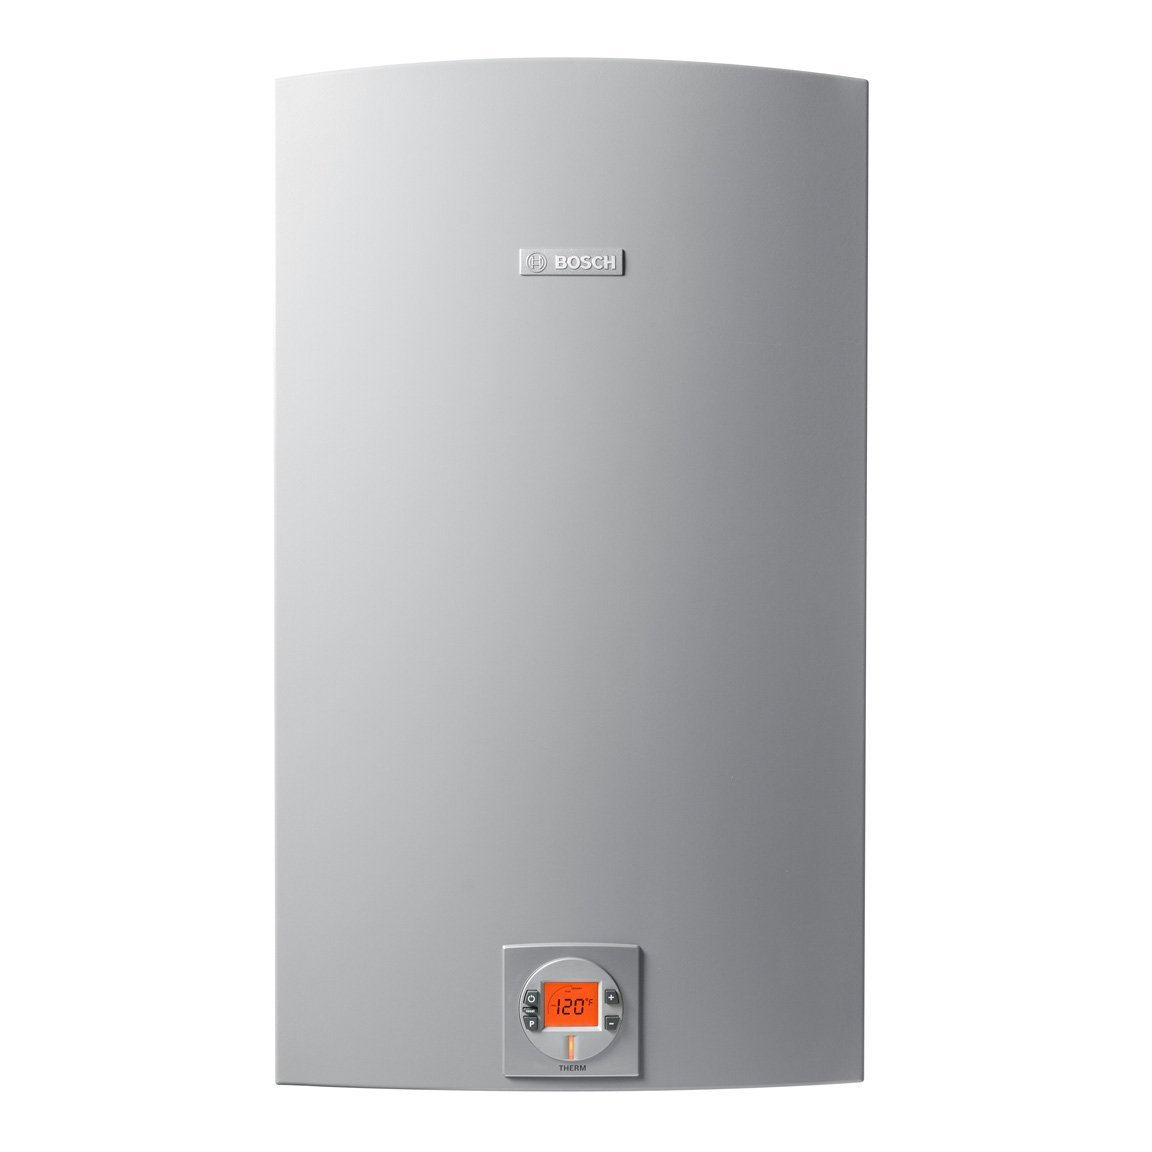 Bosch Greentherm C 1050 ES NG Tankless Water Heater, Natural Gas